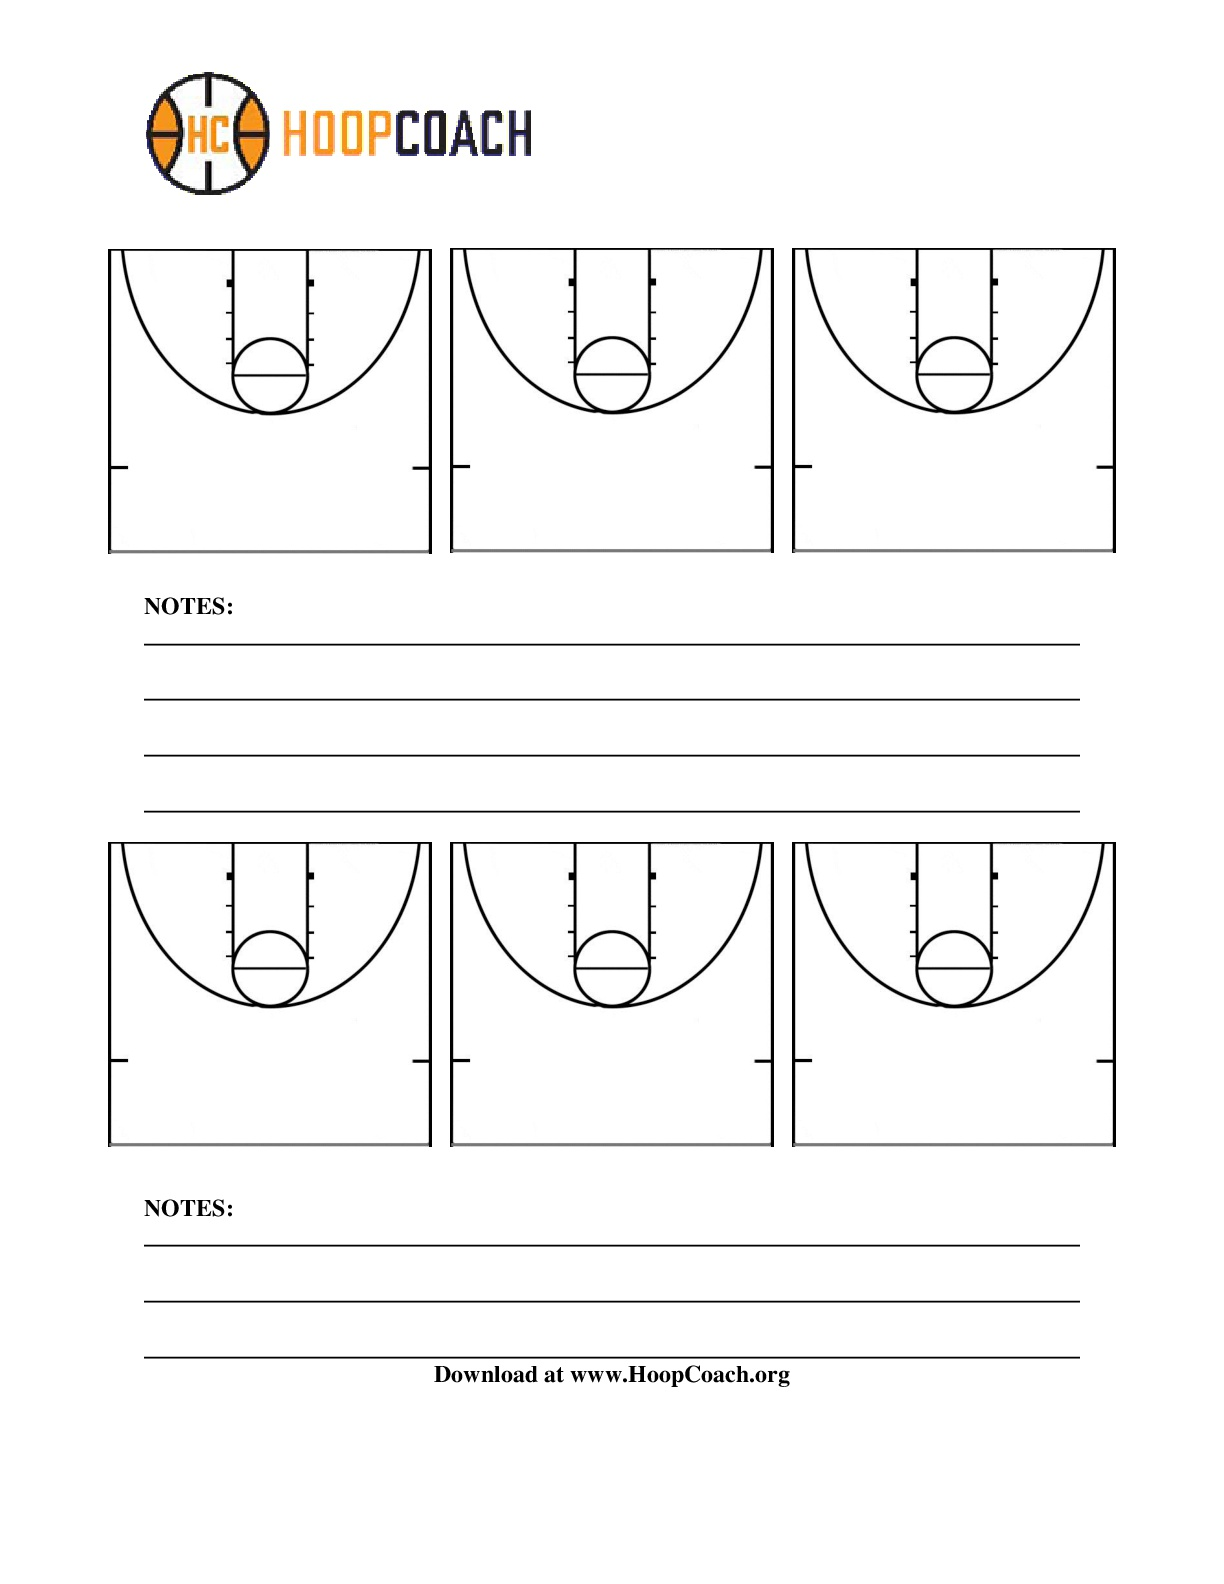 Halfcourt Basketball Diagram : halfcourt, basketball, diagram, Basketball-half-court-diagram-001, Coach